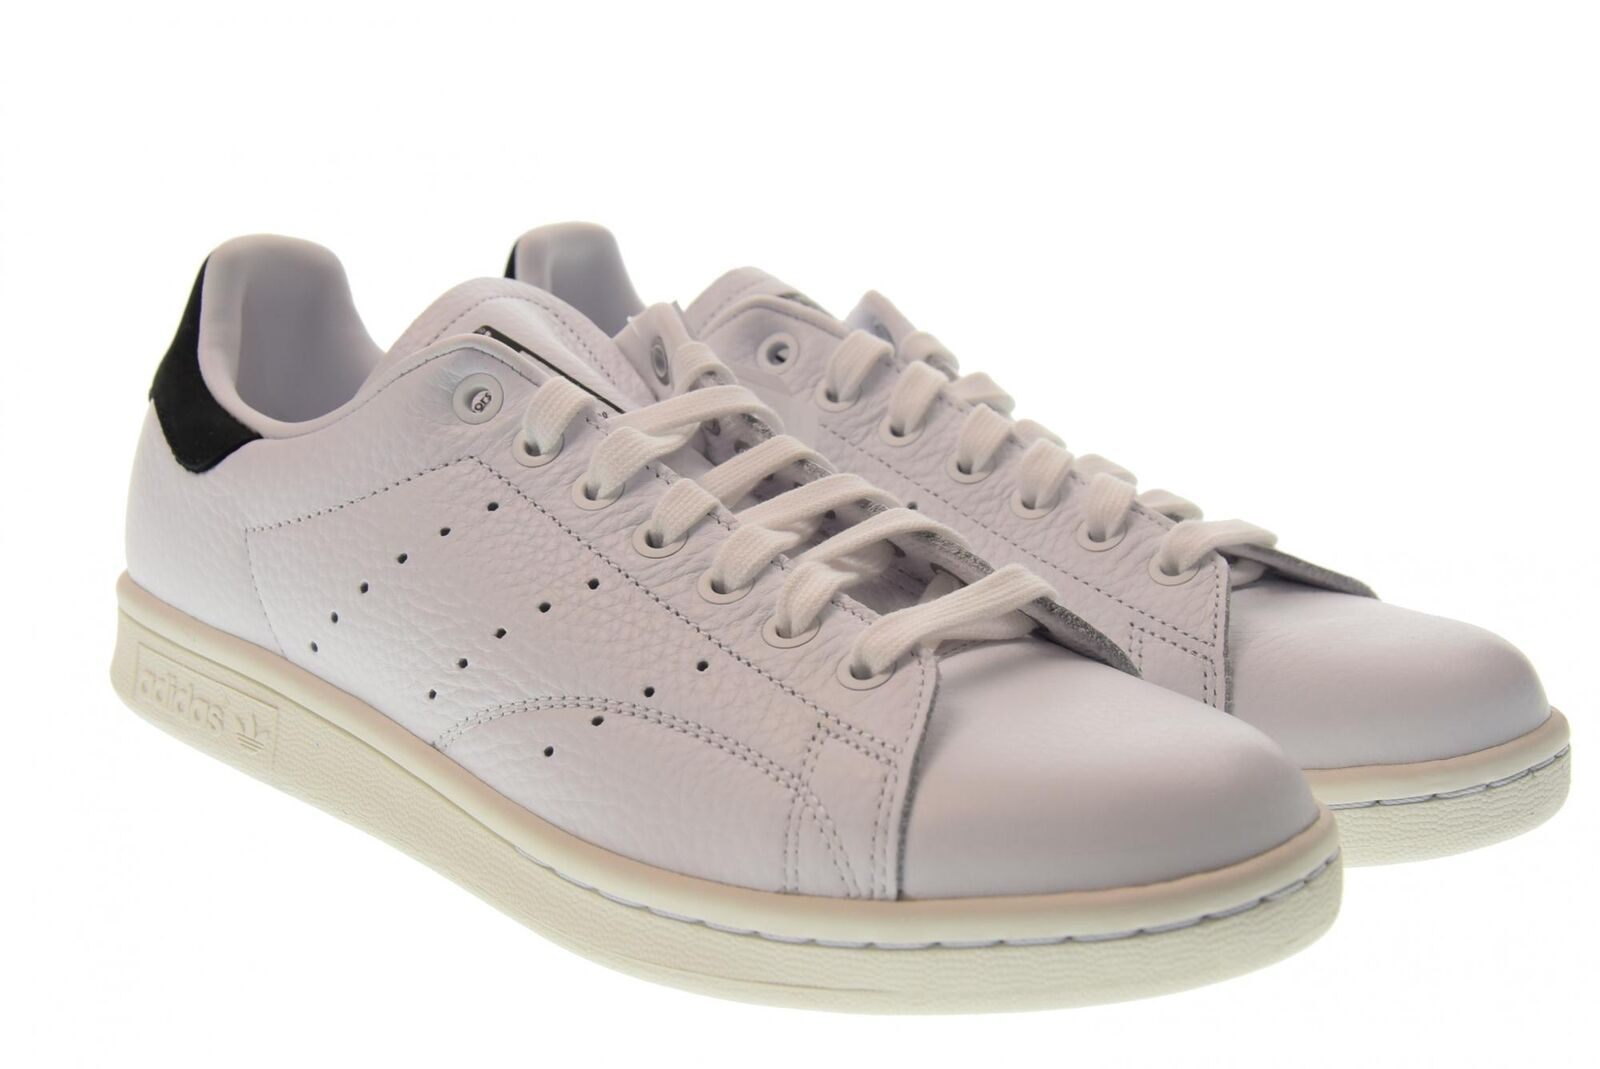 Adidas shoes unisex sneakers basse BD7436 STAN SMITH P19